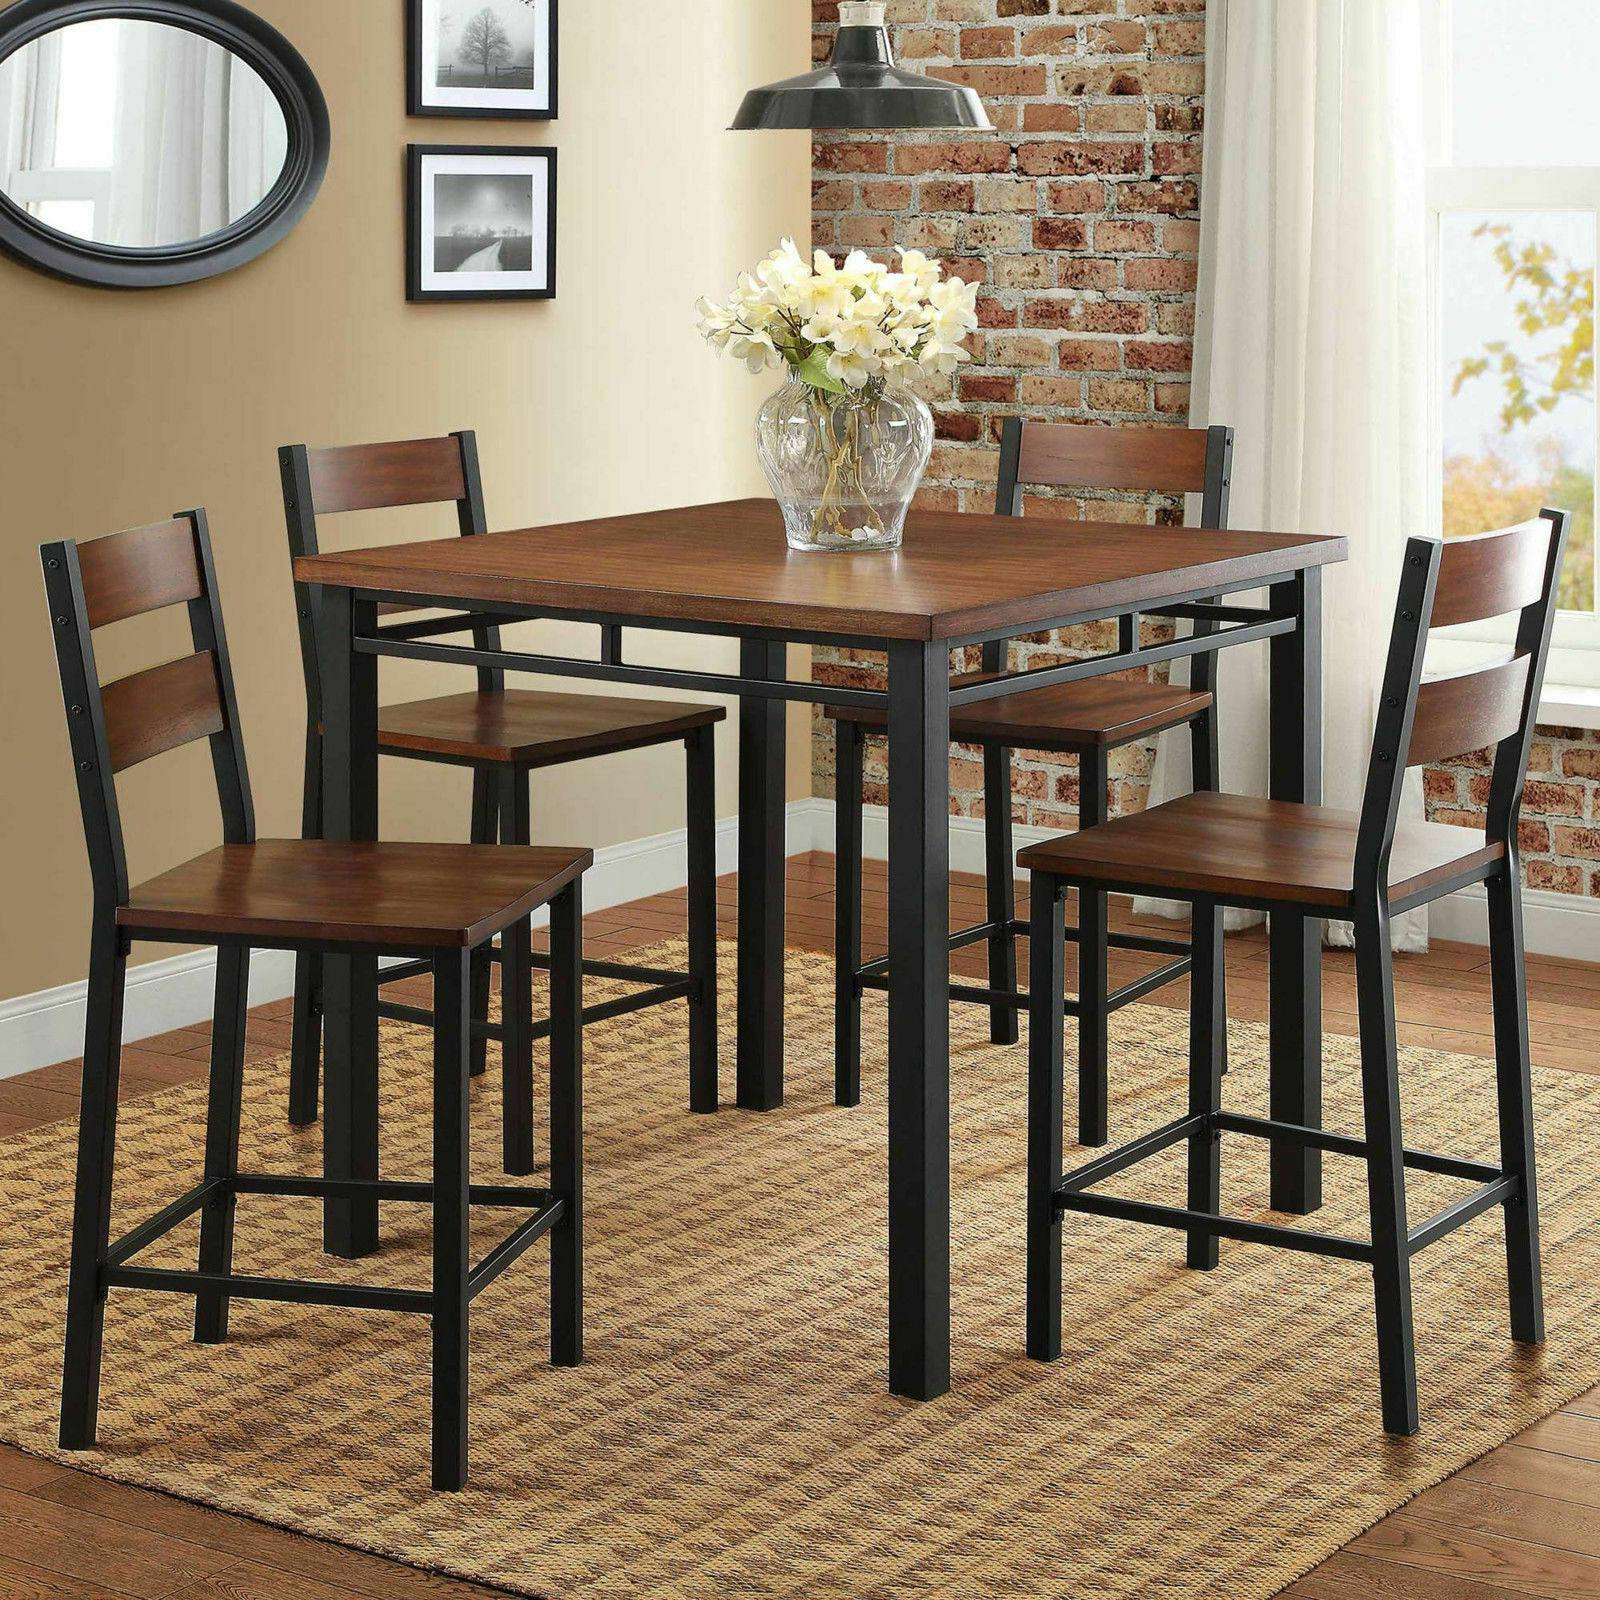 2020 5 Piece Counter Height Dining Set (View 10 of 25)